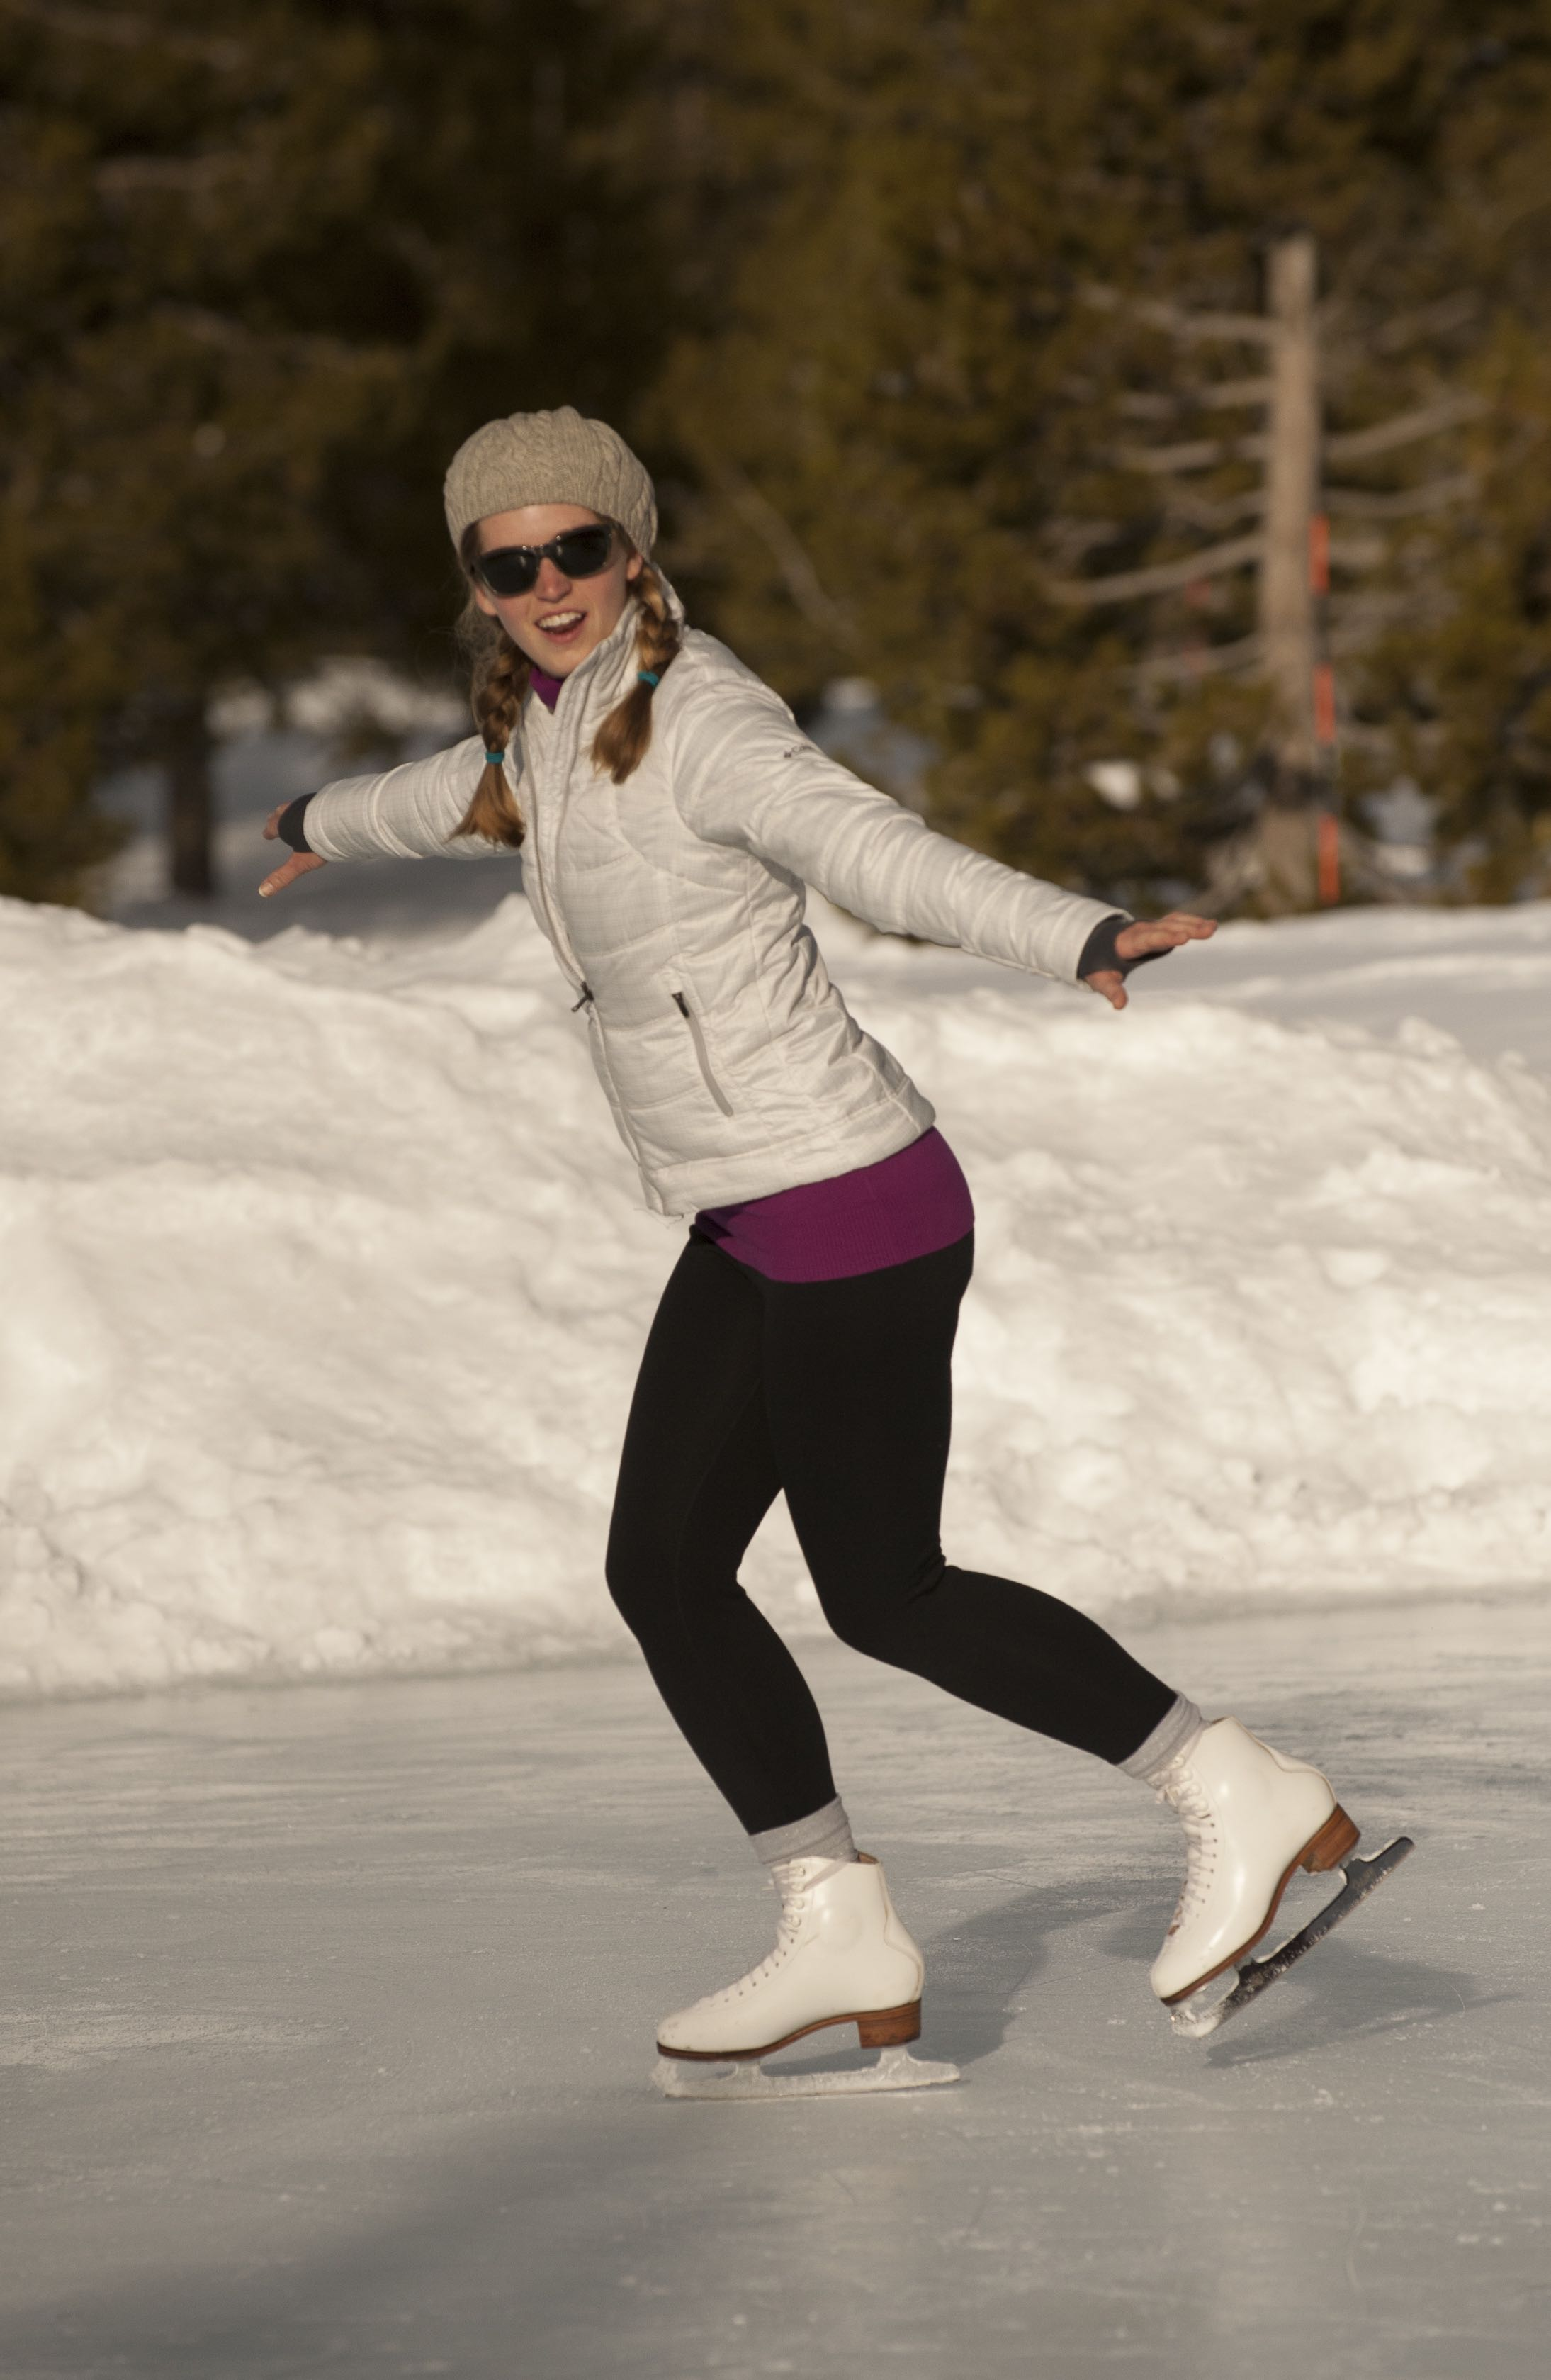 An ice skater in Yellowstone Country Montana